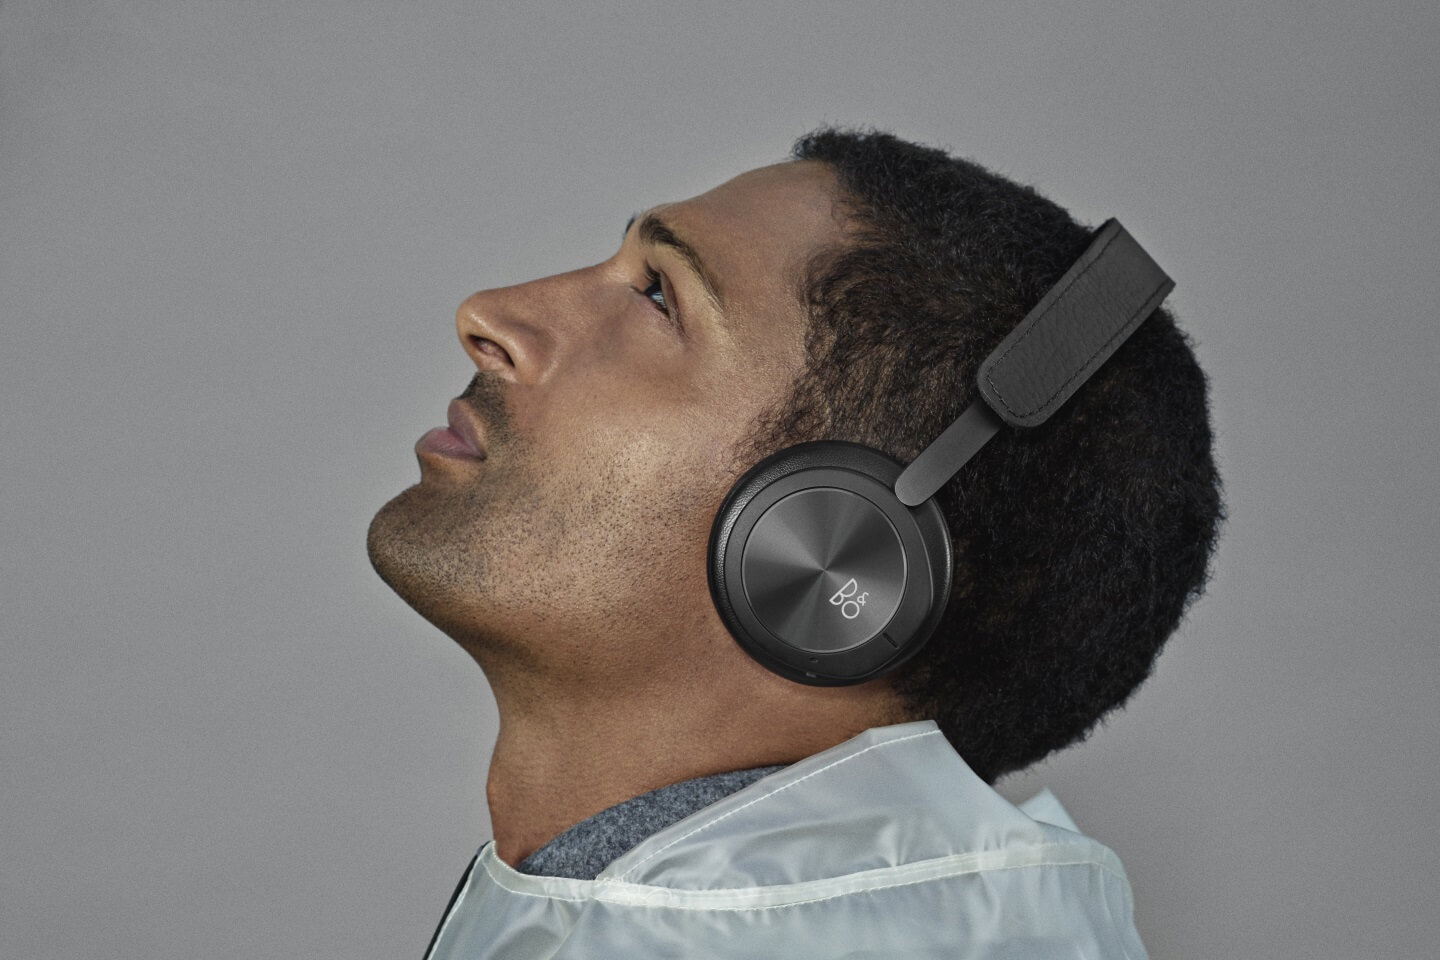 BeoPlay H8i on-ear headphones with ANC and Transparency mode.